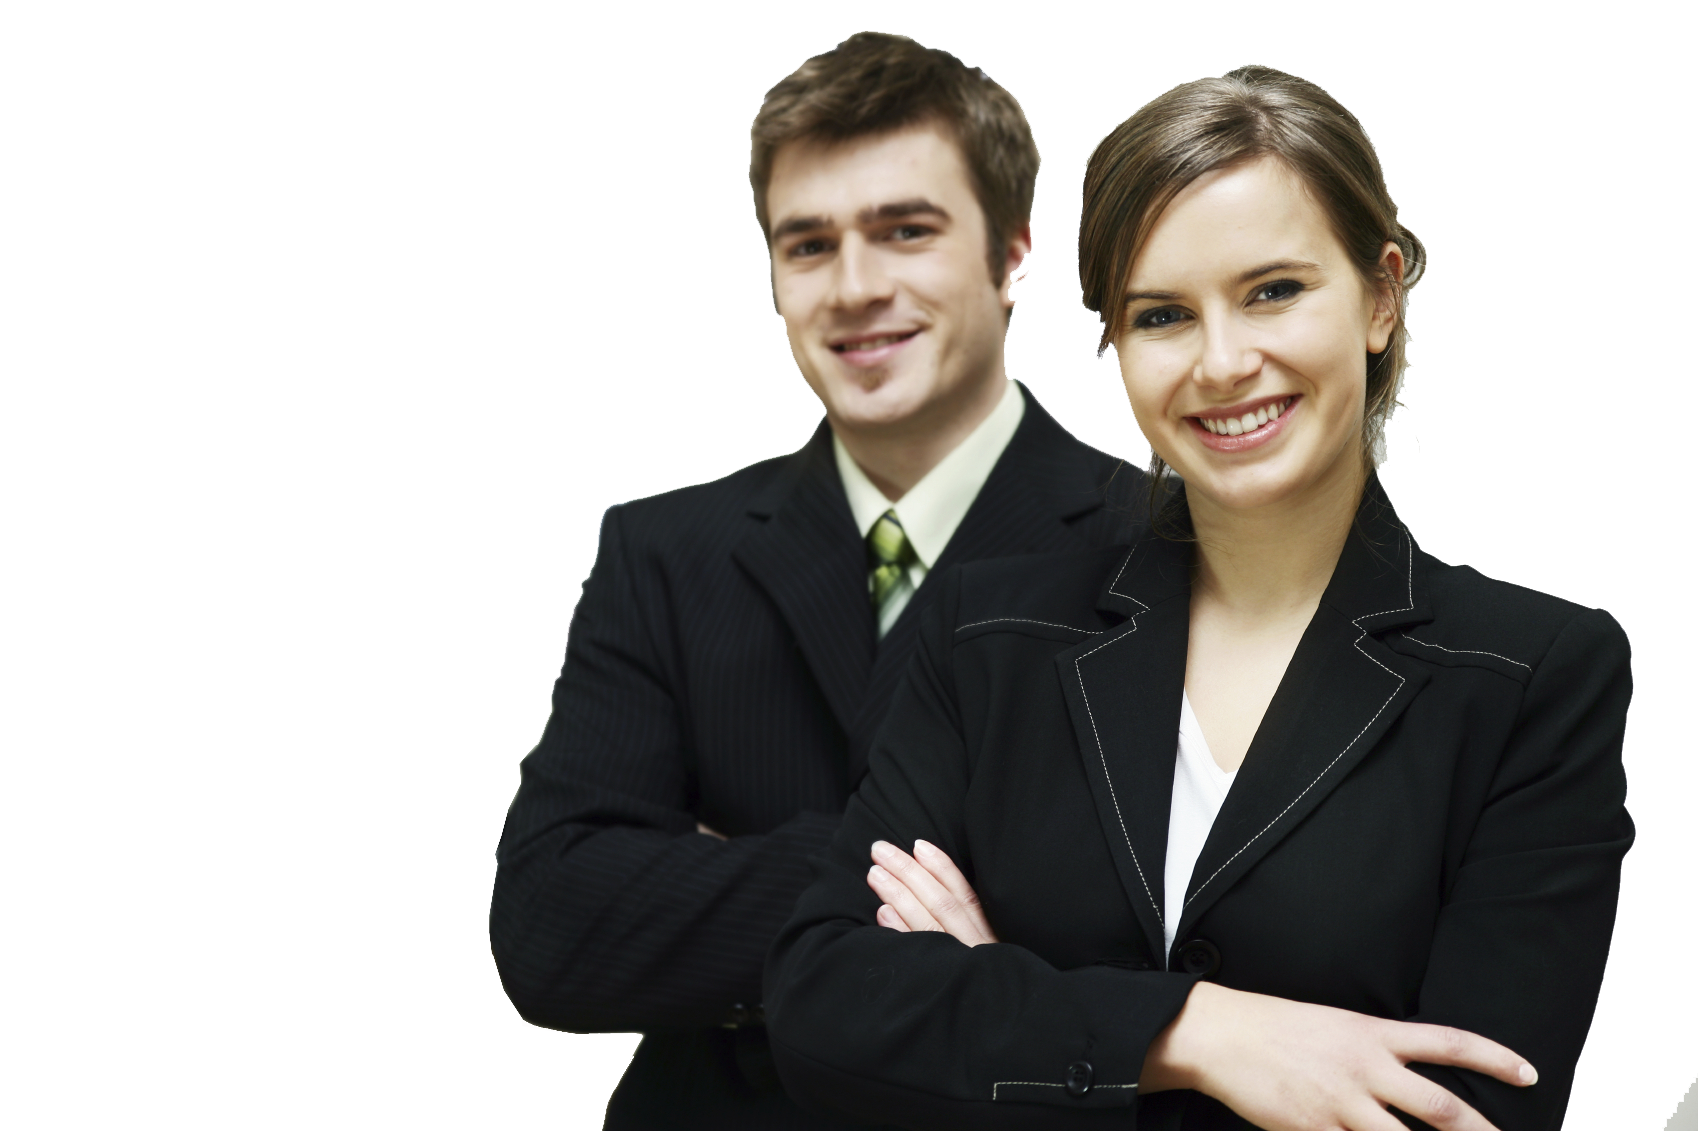 Business PNG - 15405